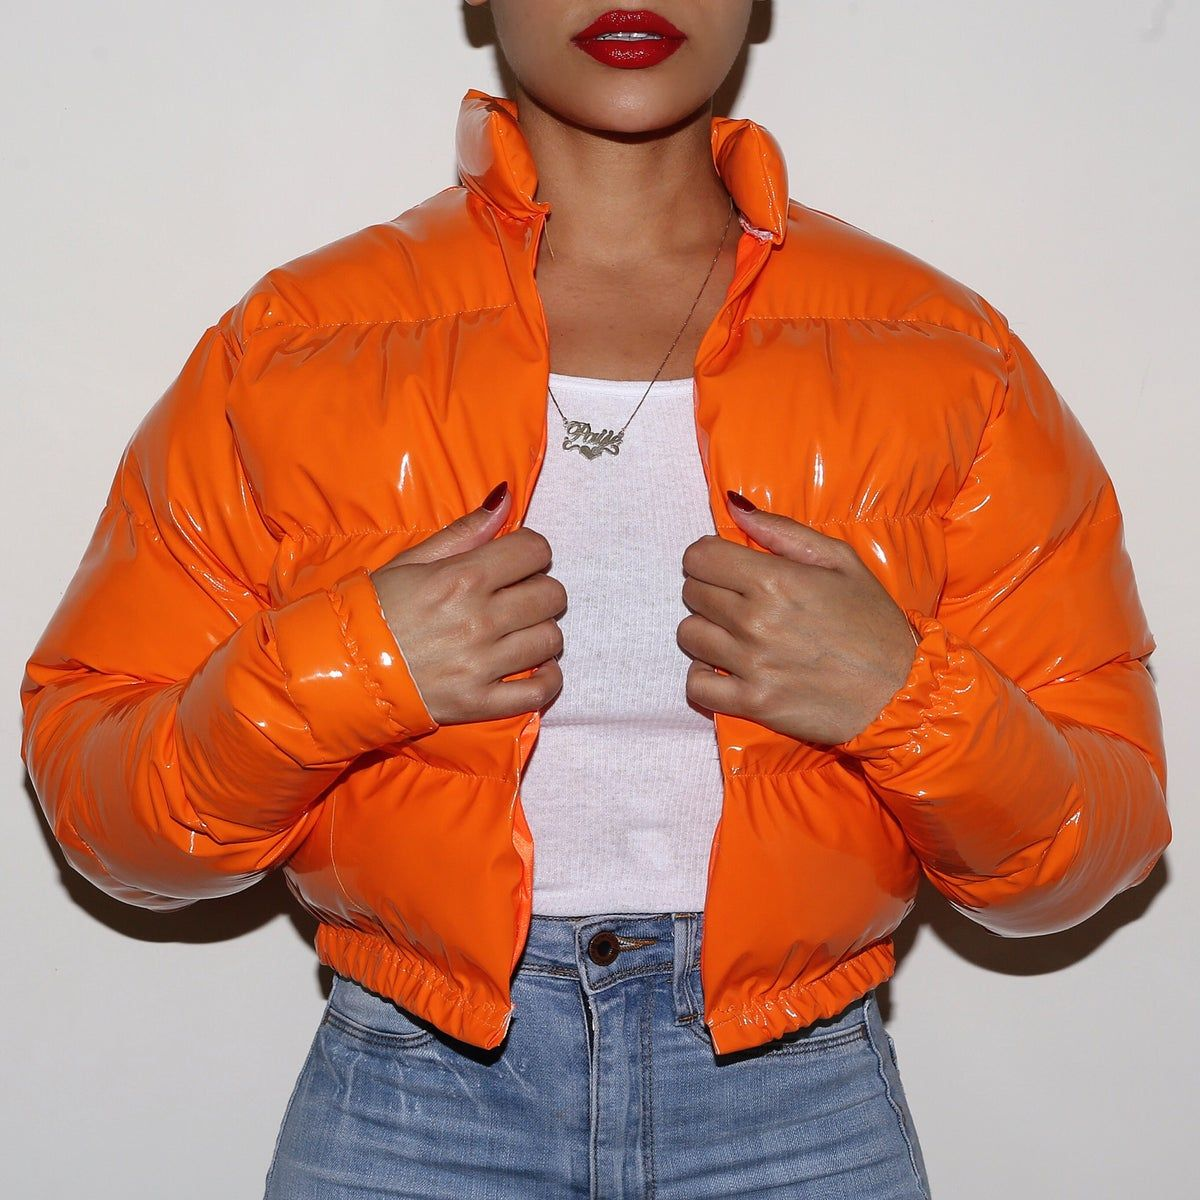 Pvc Vinyl If You Don T Want To Order The One Size Fits All Coat Specify In The Details Once You Check Out Th Bubble Jacket Outfit Orange Outfit Orange Fashion [ 1200 x 1200 Pixel ]